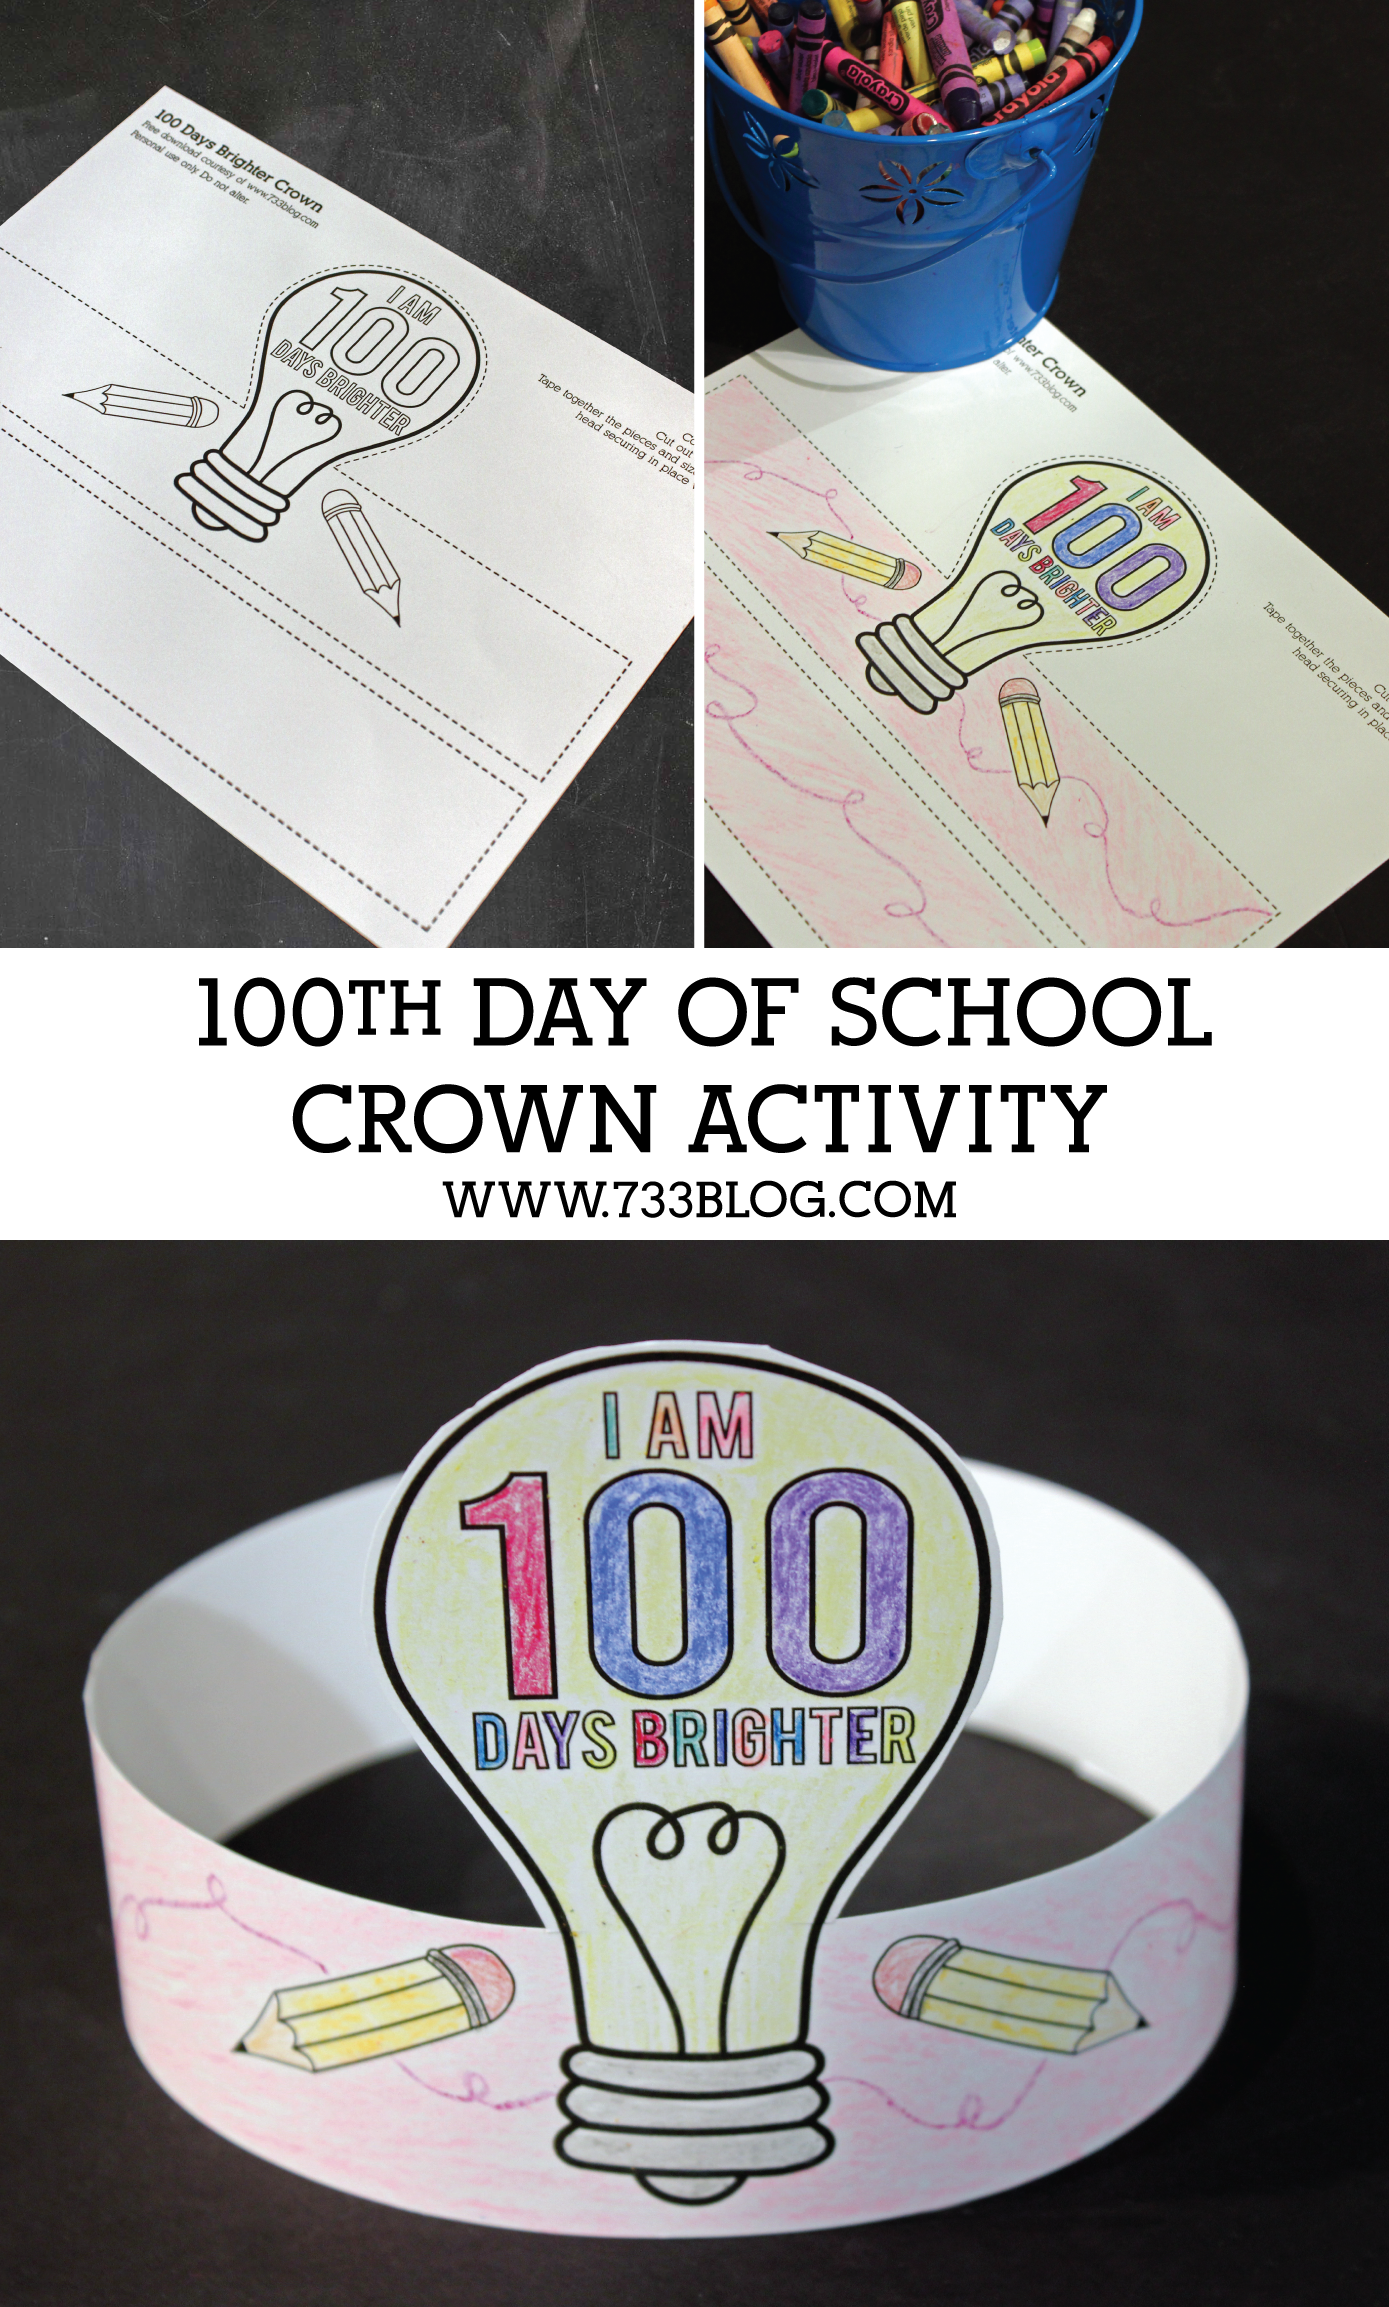 100 Days Brighter Crown Activity | 100th day of school | Pinterest ...